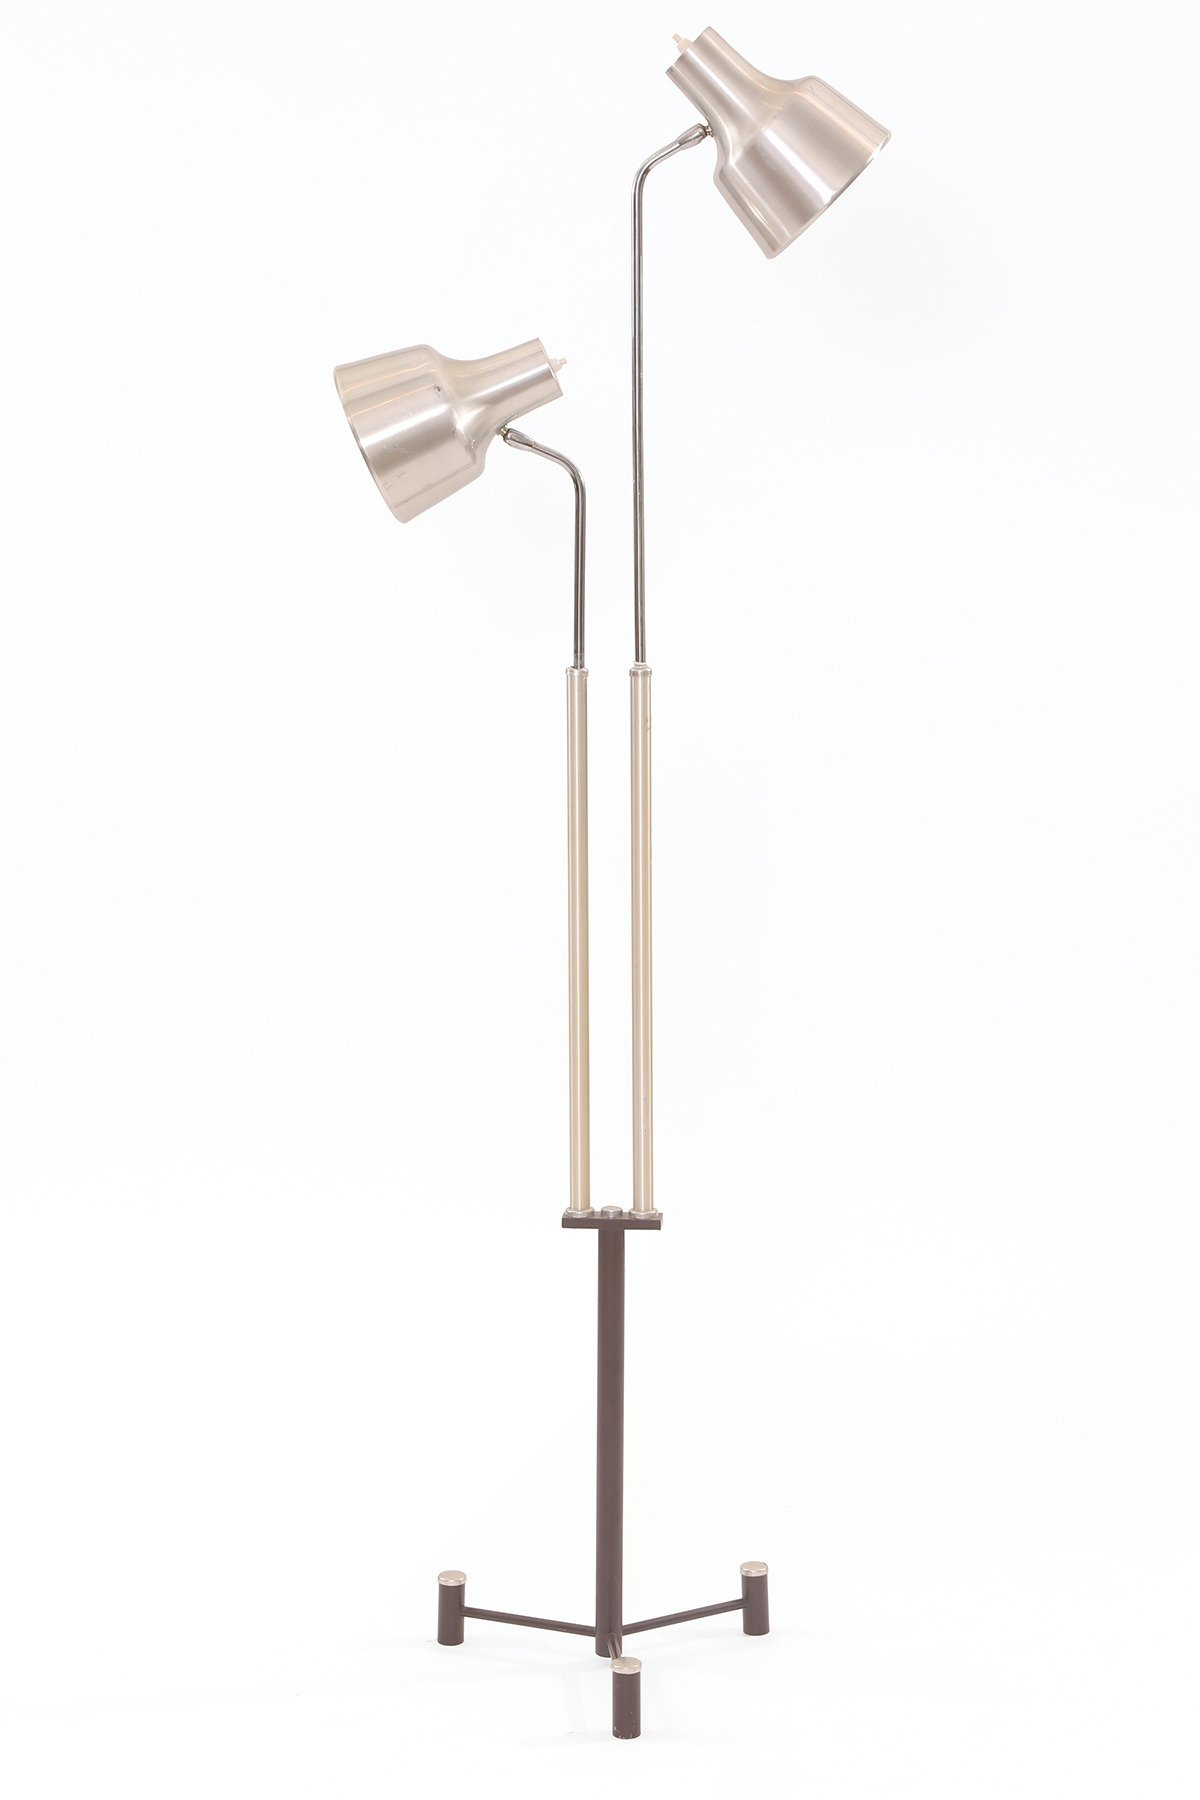 Steel Adjule Danish Floor Lamp